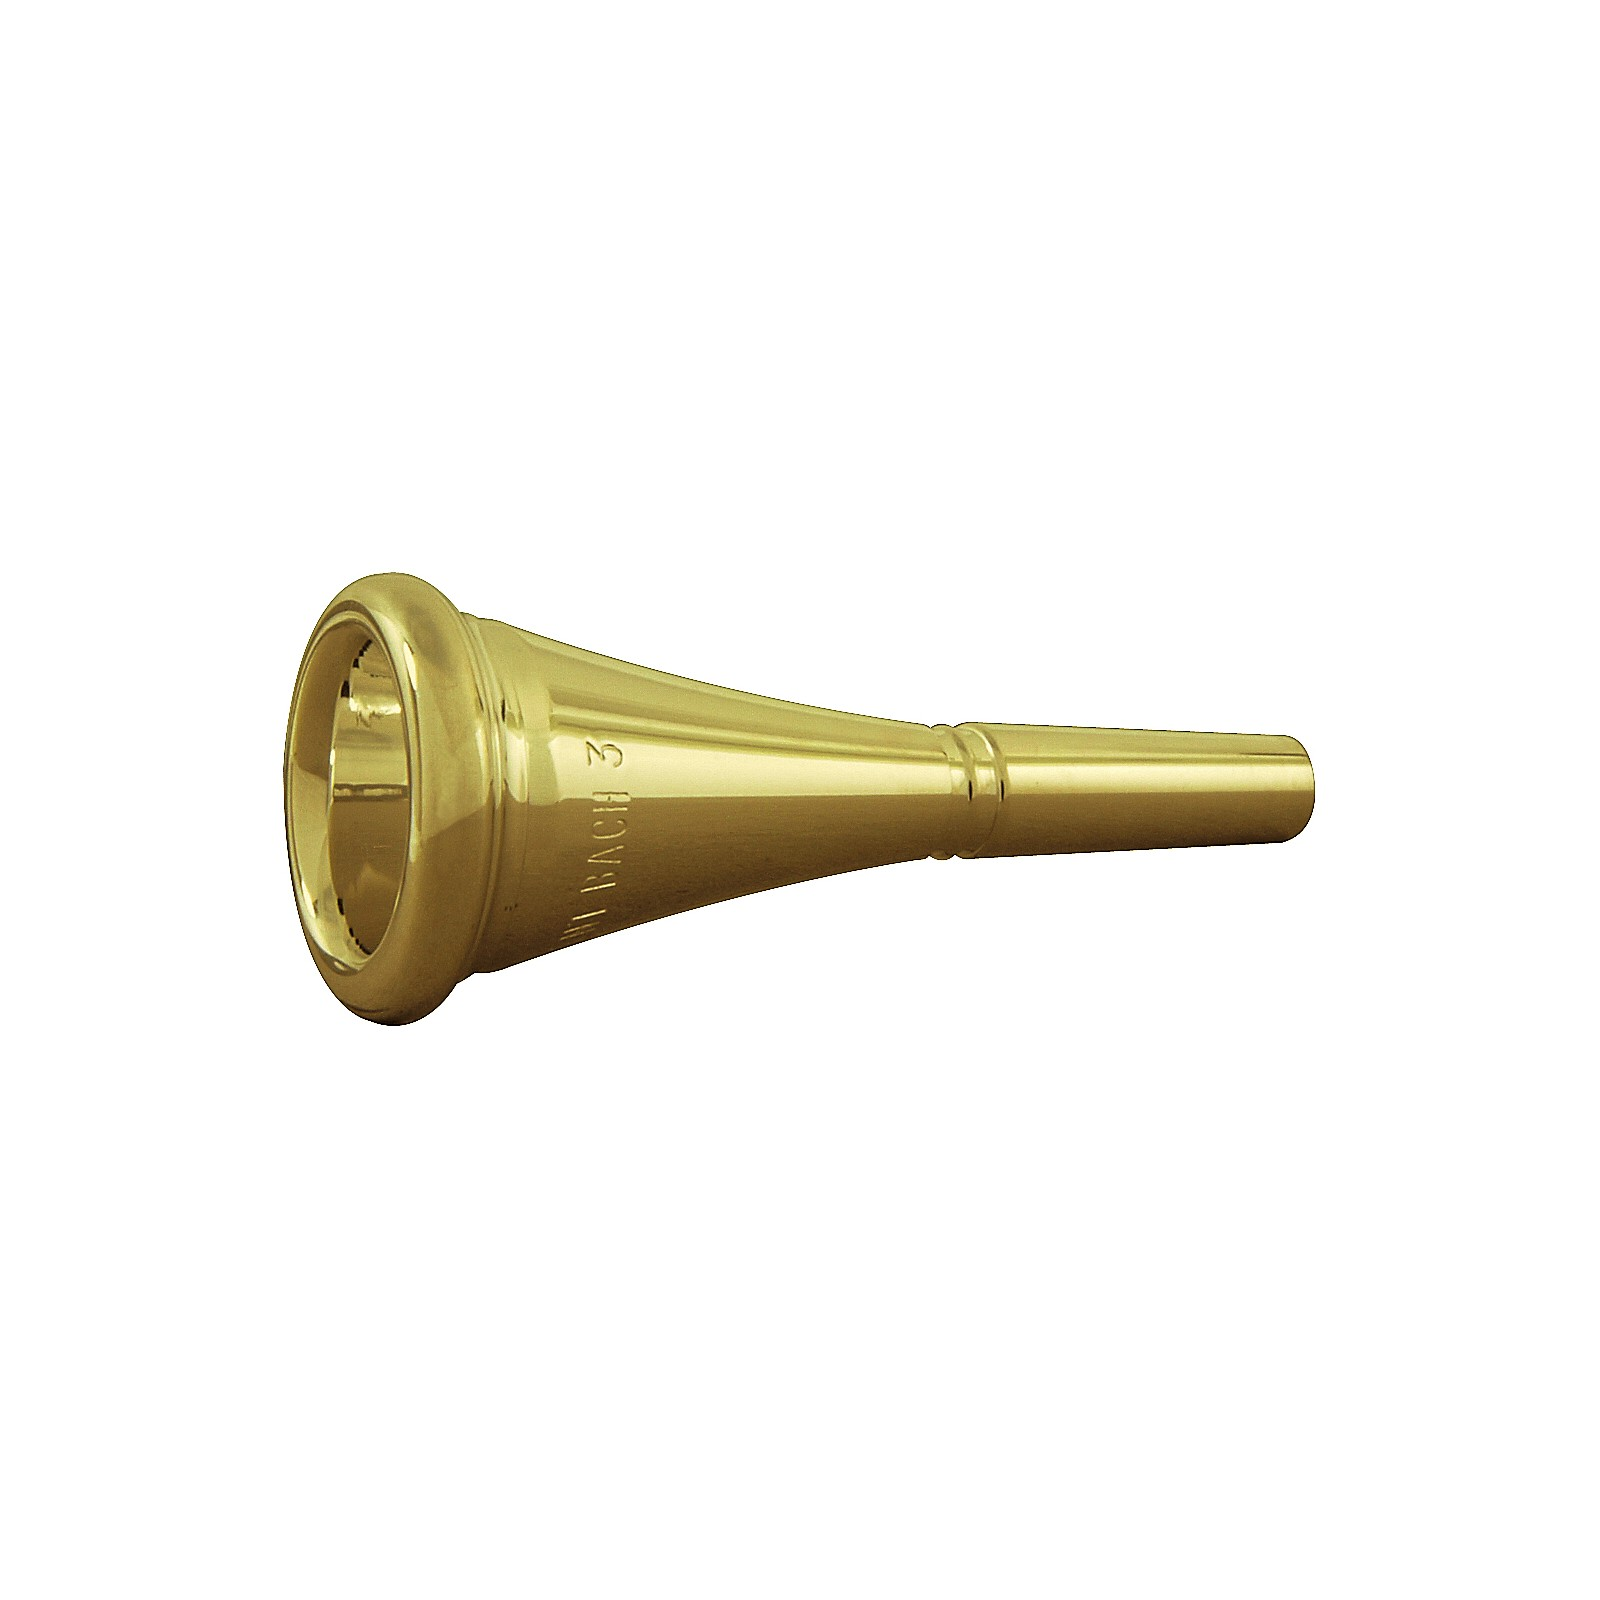 Bach French Horn Mouthpieces in Gold